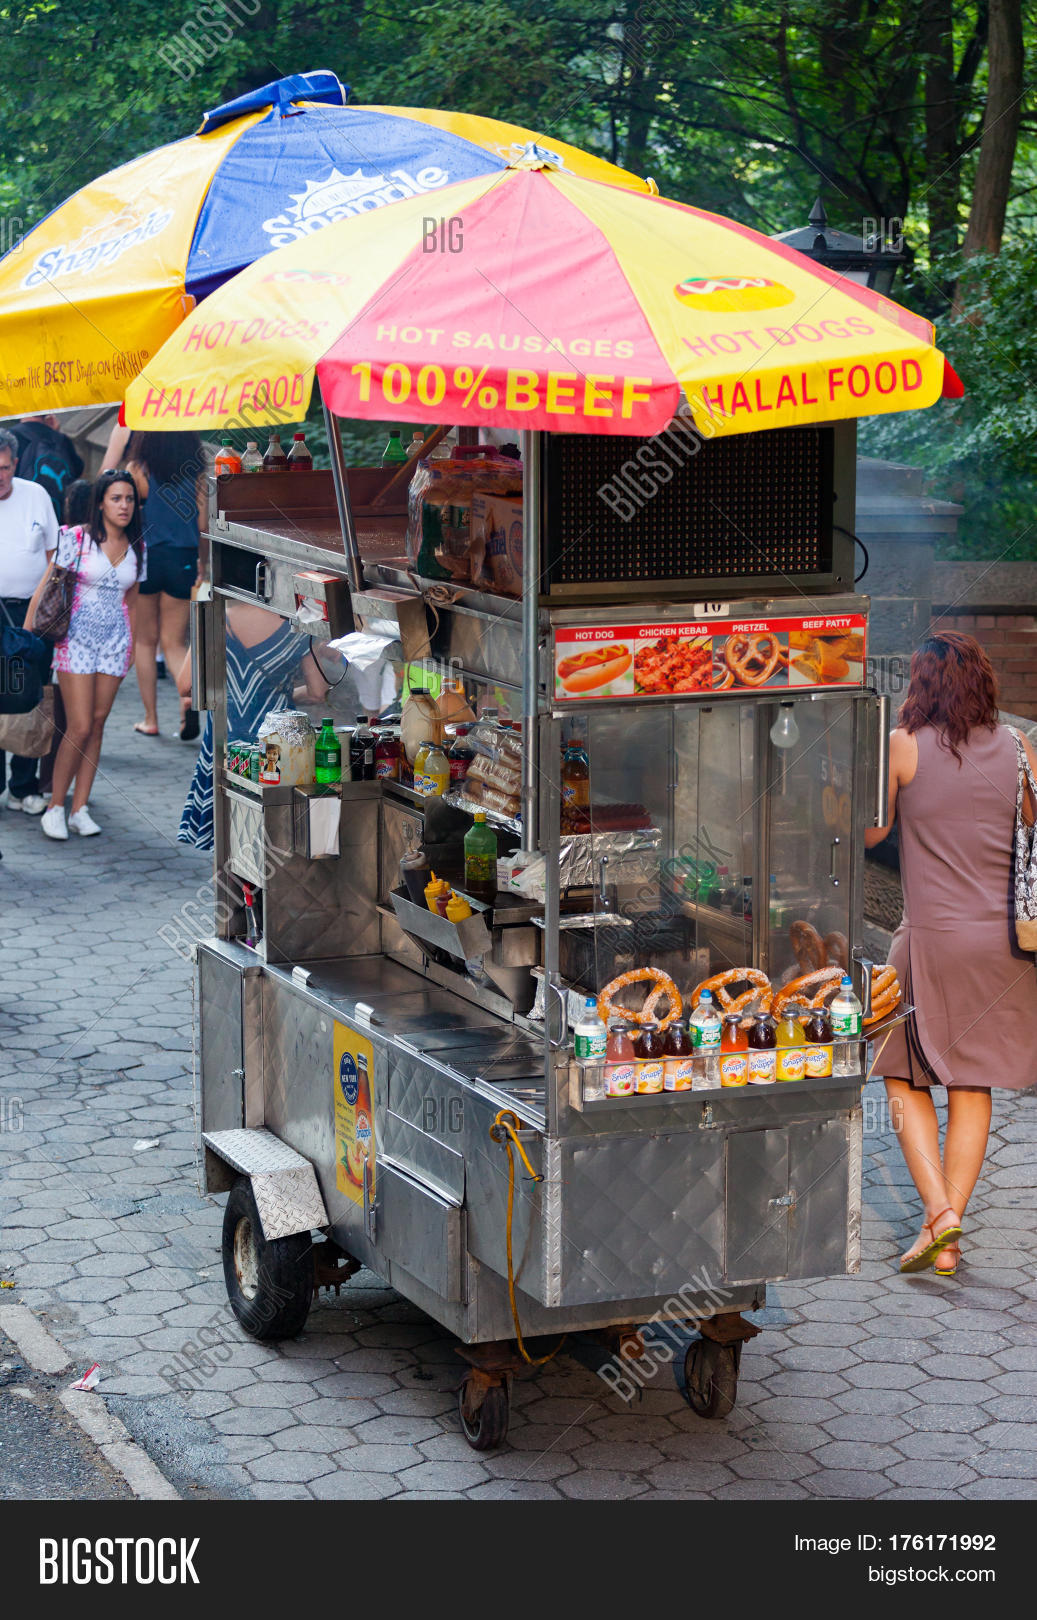 5 street kiosk Our guide to london's best street food delivers everything you need to know about the city's  (£5) find it at: kerb camden, dinerama, spread eagle e9 but.